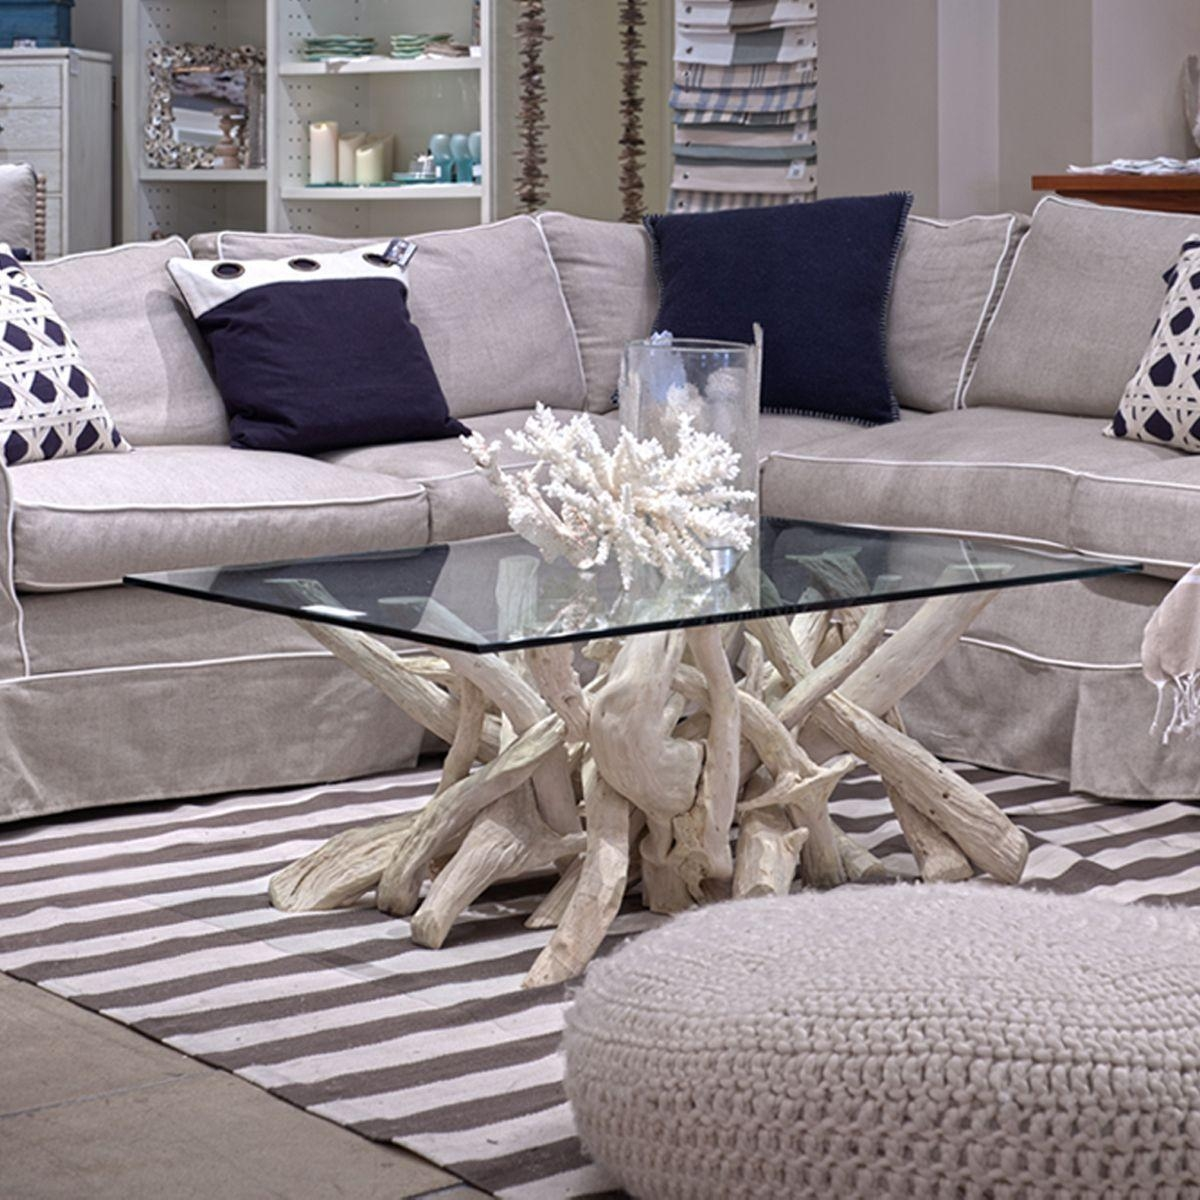 Driftwood Sofa Table   Decorative Table Decoration Regarding Crate And Barrel Sofa Tables (Image 19 of 20)